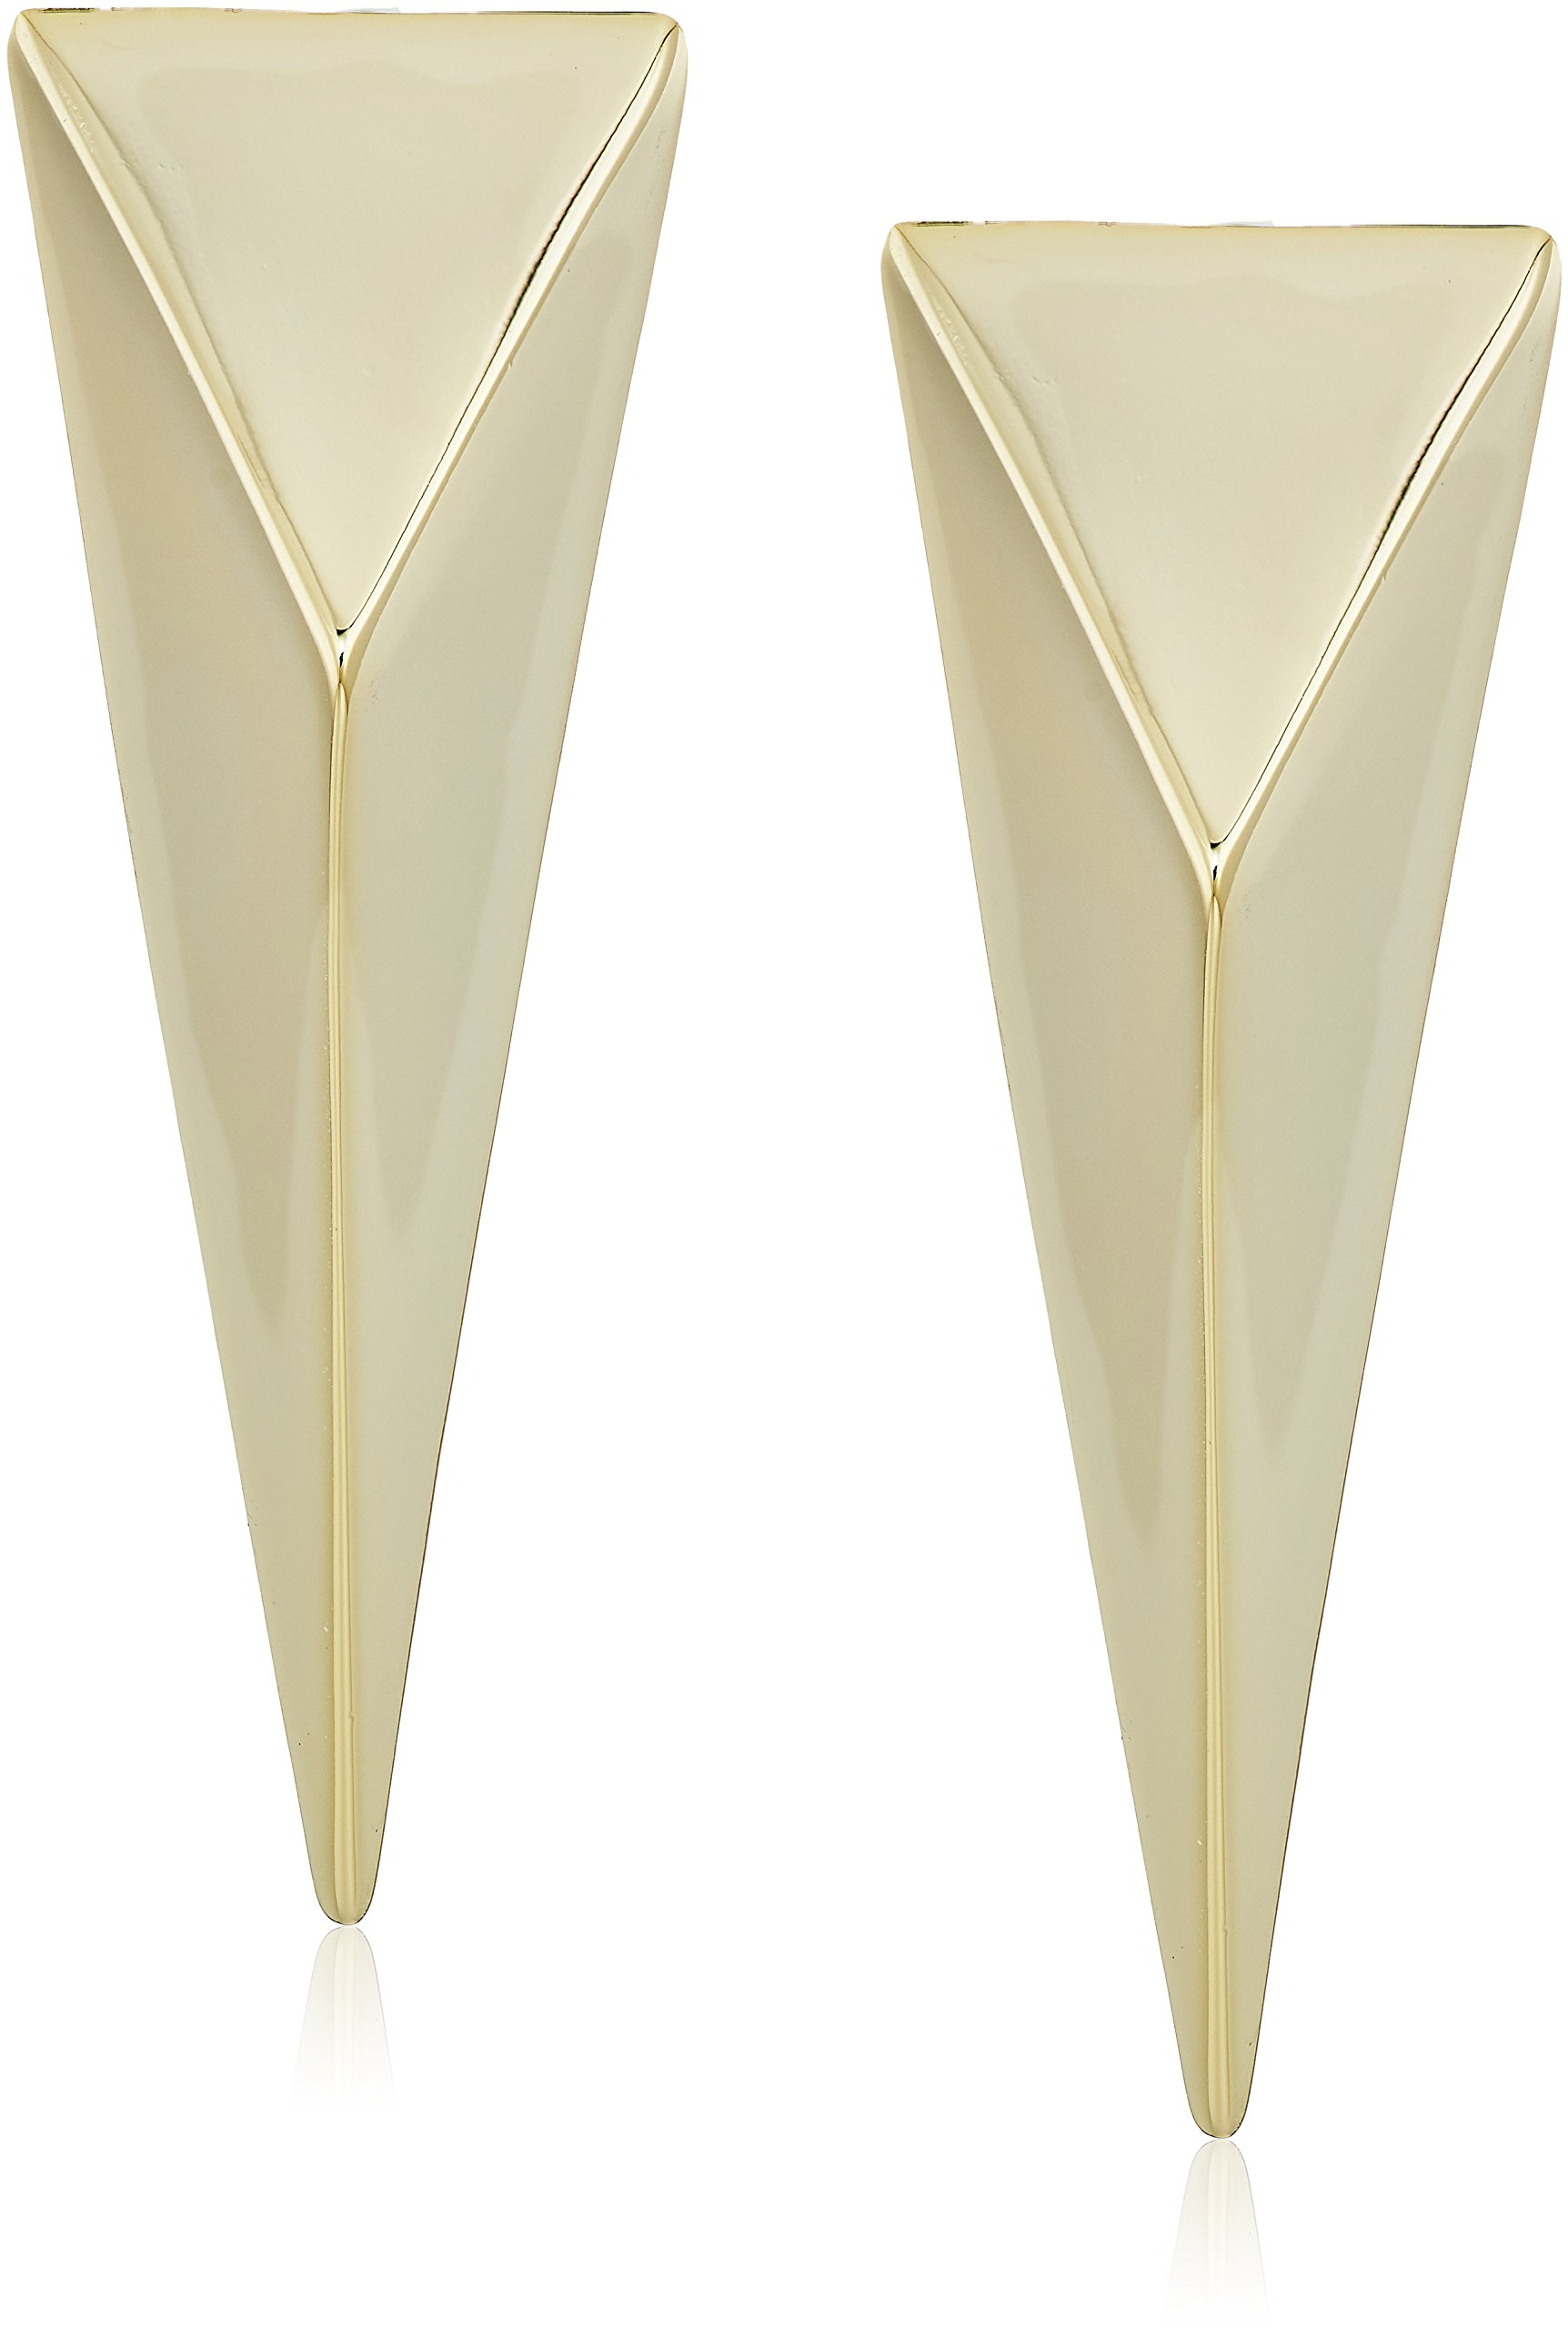 Alexis Bittar Fall 2017 Extra Large Pyramid Clip-On Earrings